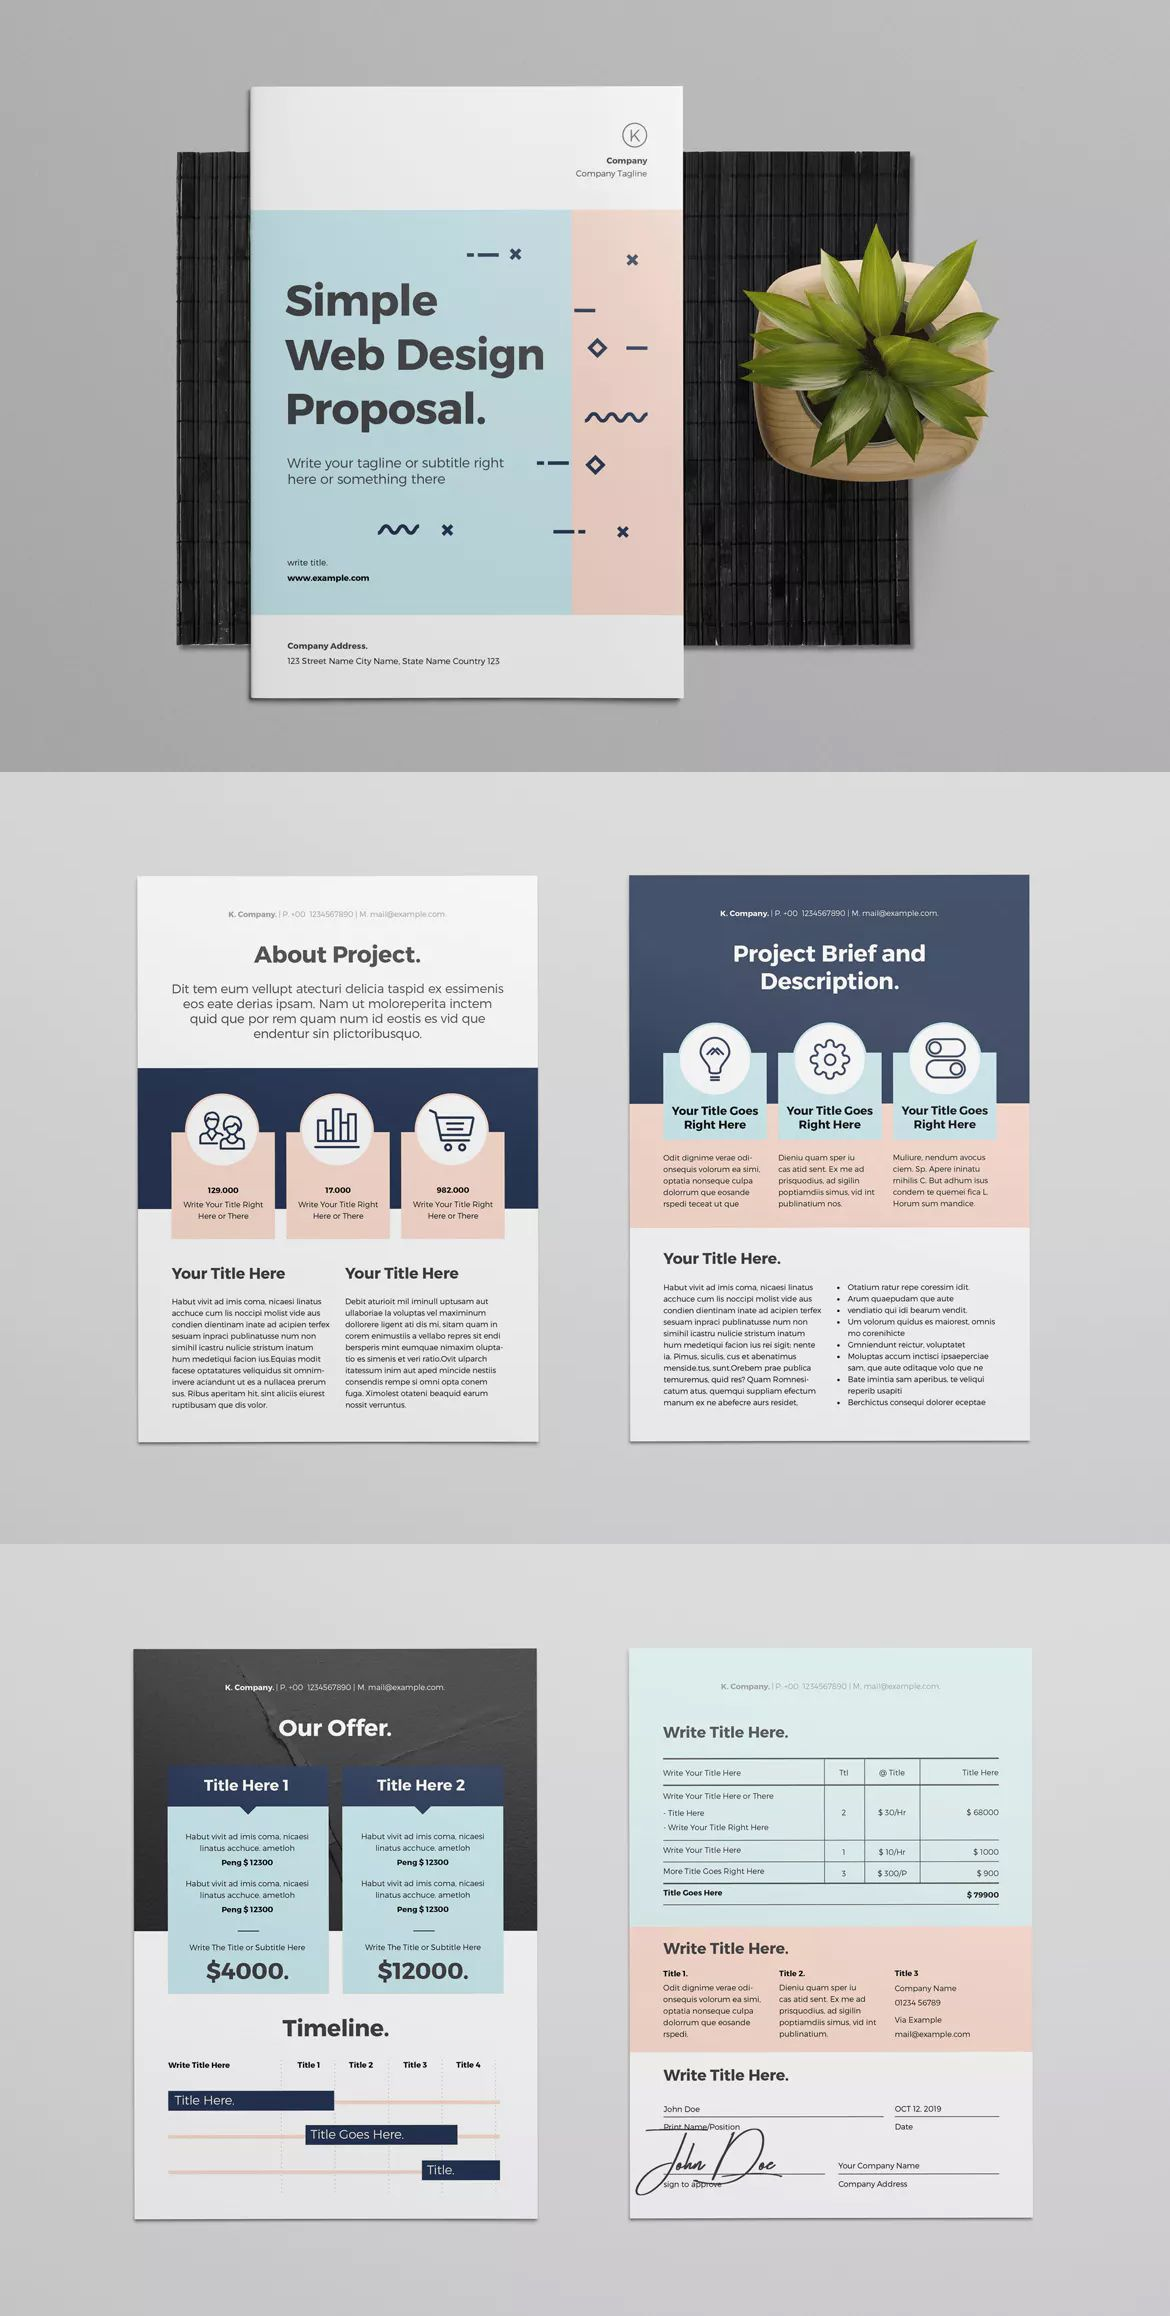 001 Amazing Web Design Proposal Template Indesign High Resolution Full